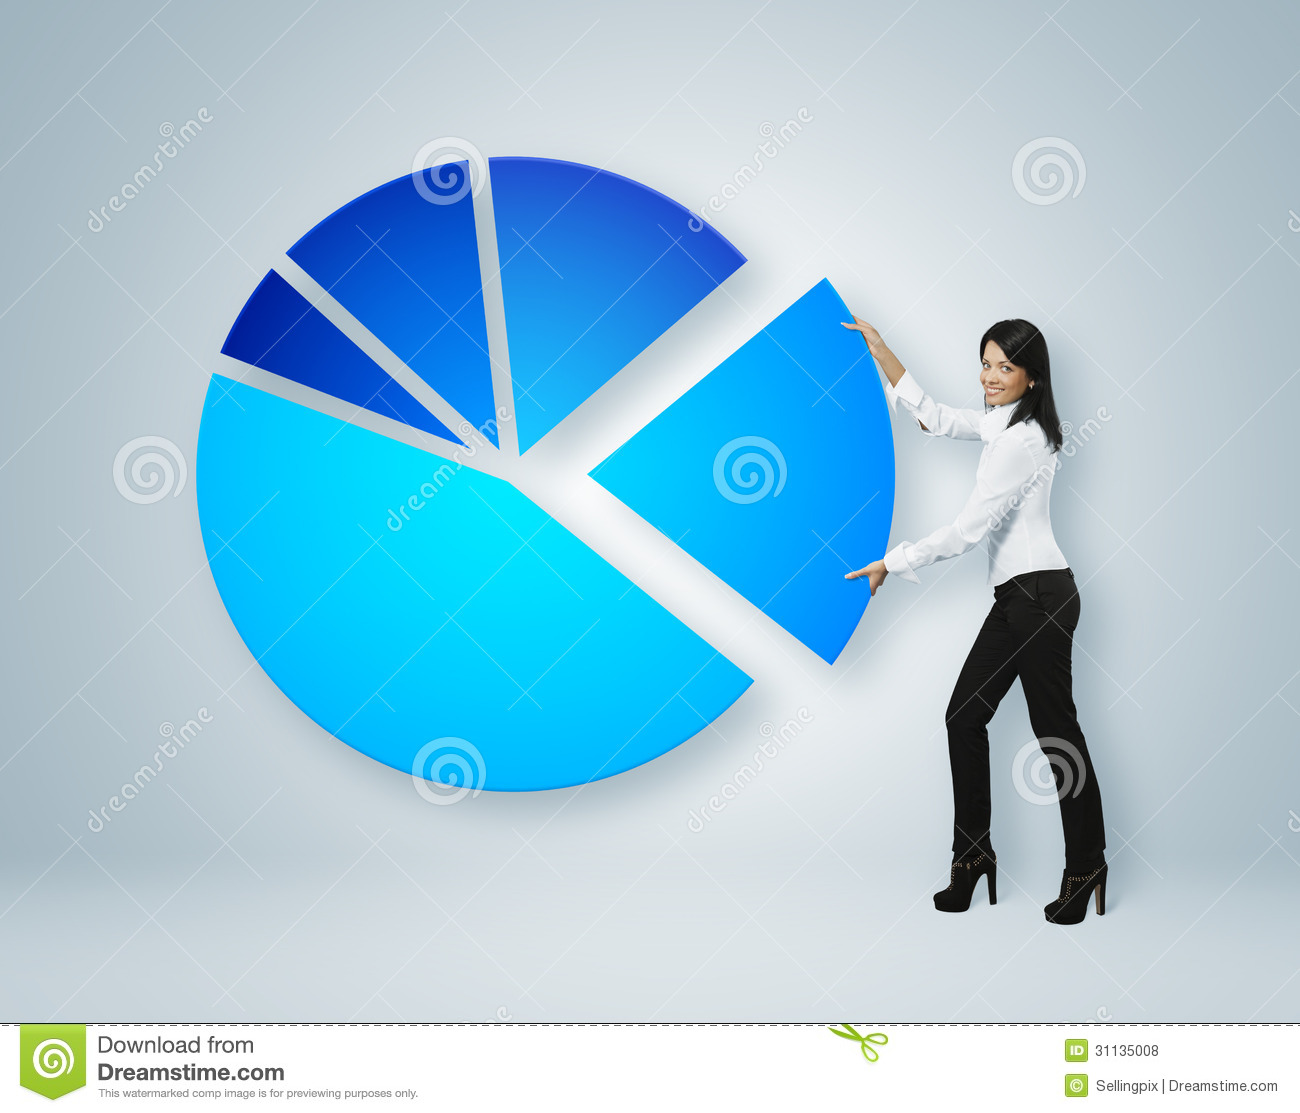 ... Put Sector Of Pie Chart. Royalty Free Stock Photos - Image: 31135008